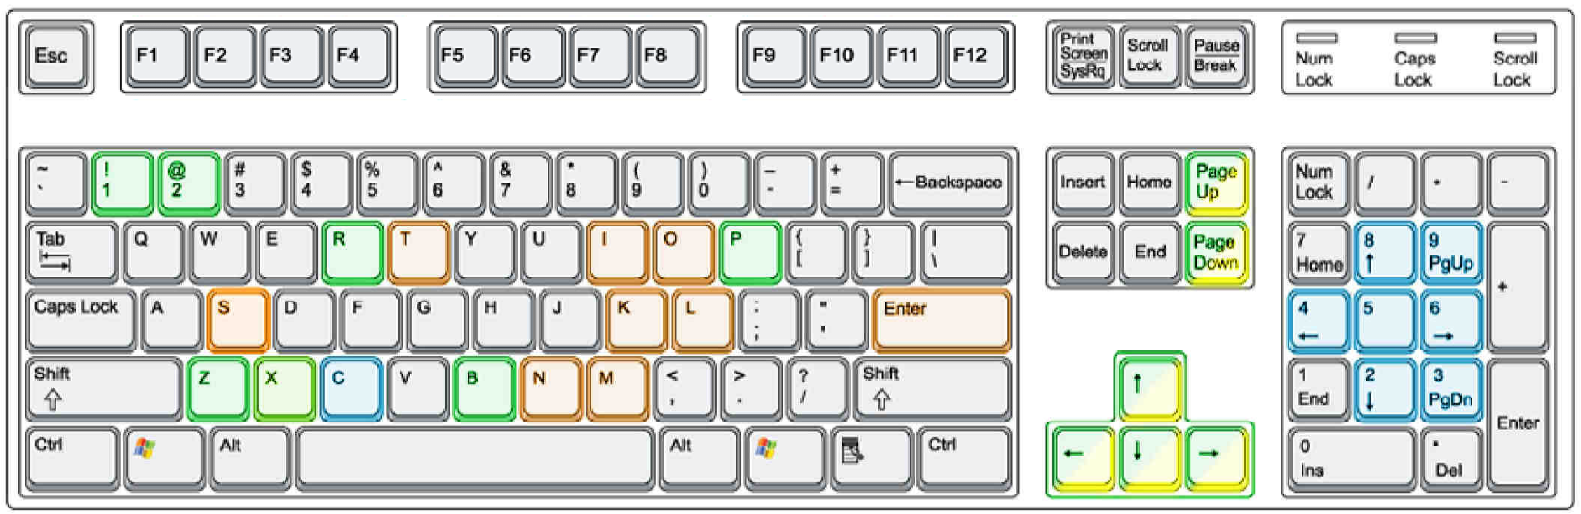 Planes and boats keyboard layout